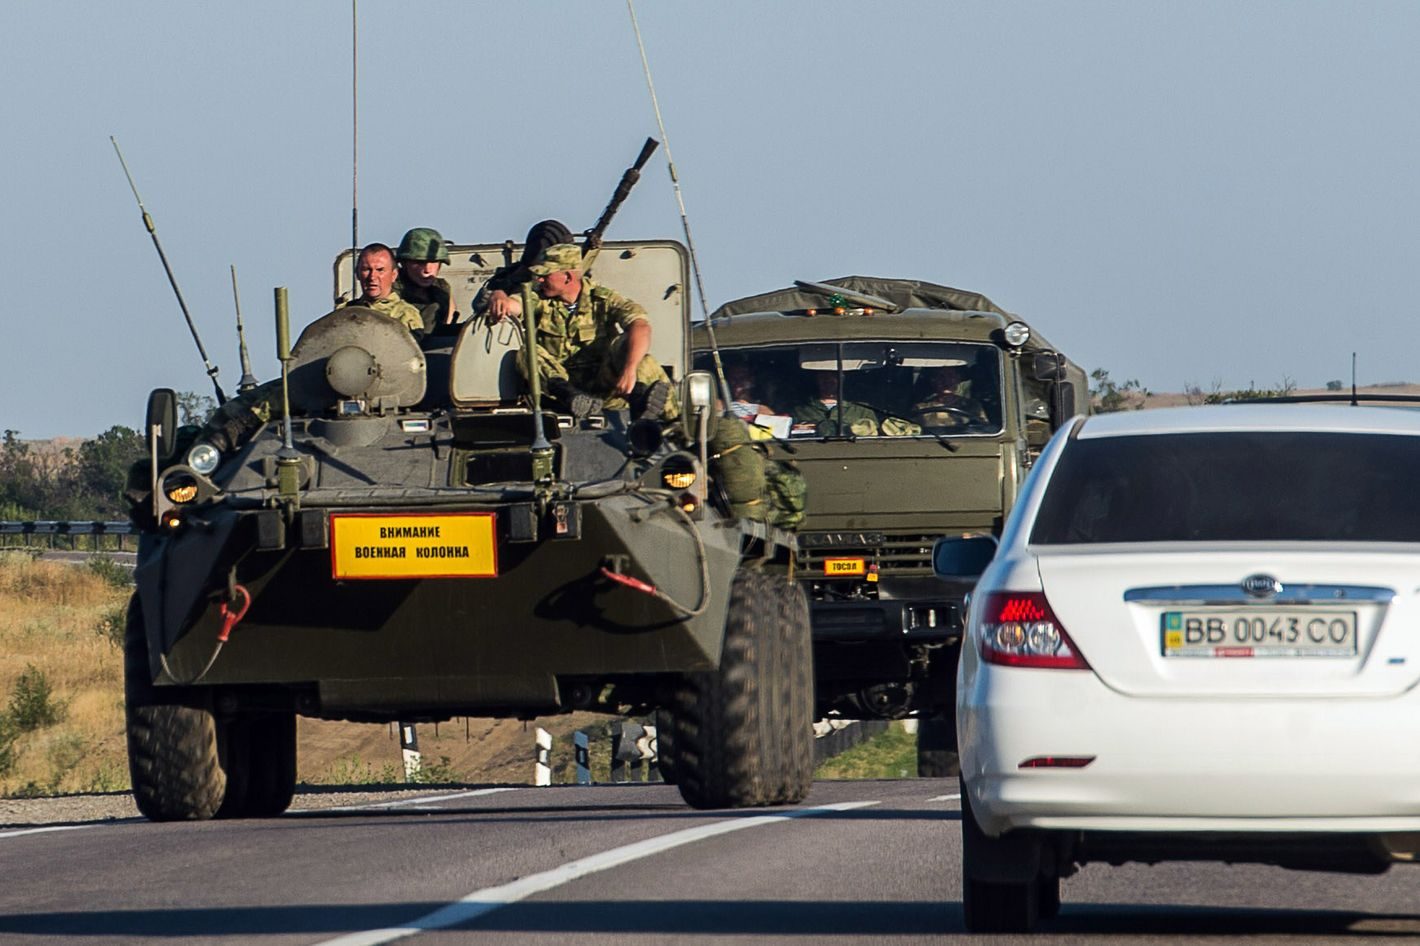 """A Ruissian armoured personnel carrier (APC) leads a column of military vehicles on a road near the town of Kamensk-Shakhtinsky in the Rostov region, some 30 km from the Russian-Ukrainian border, on August 15, 2014. Ukrainian officials were preparing to inspect a massive Russian """"aid"""" convoy bound for the conflict-torn east on August 15 after Russian armoured vehicles crossed the border, fuelling fears Moscow is trying to bolster the unravelling insurgency. The Ukrainian military had announced that checks had begun on the near 300-truck convoy but later said only that 59 border and customs officials had arrived at a Russian border post to prepare to carry out the inspections. AFP PHOTO / DMITRY SEREBRYAKOV        (Photo credit should read DMITRY SEREBRYAKOV/AFP/Getty Images)"""